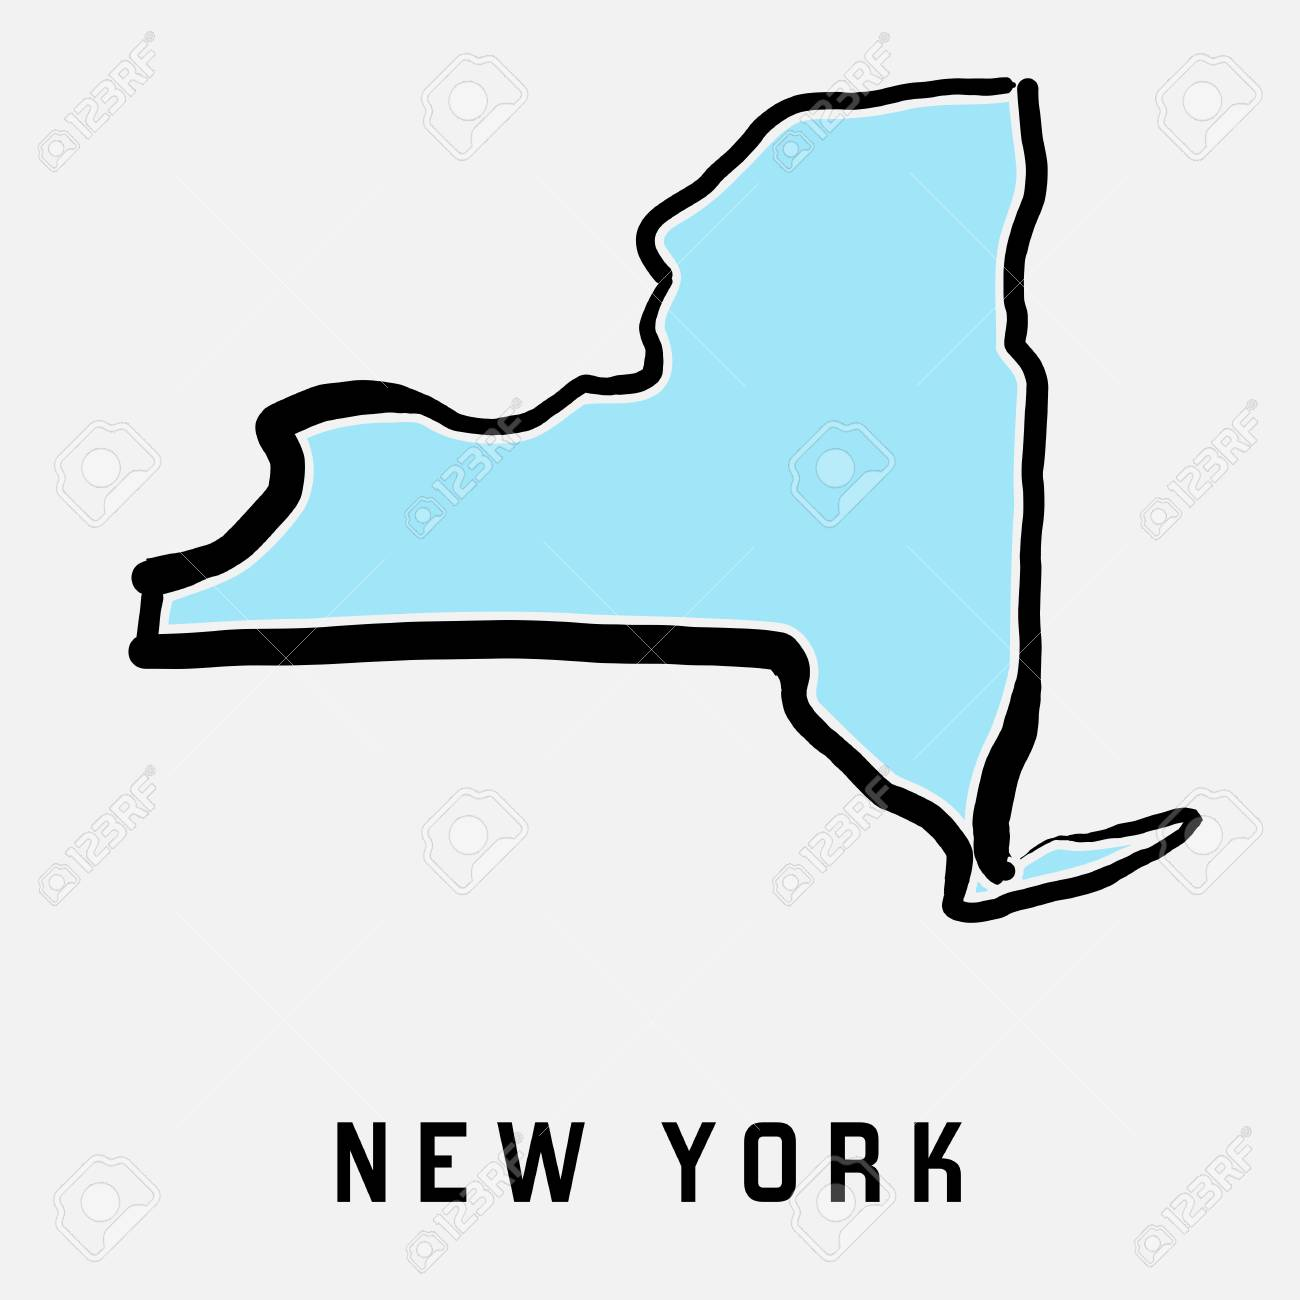 New York map outline.